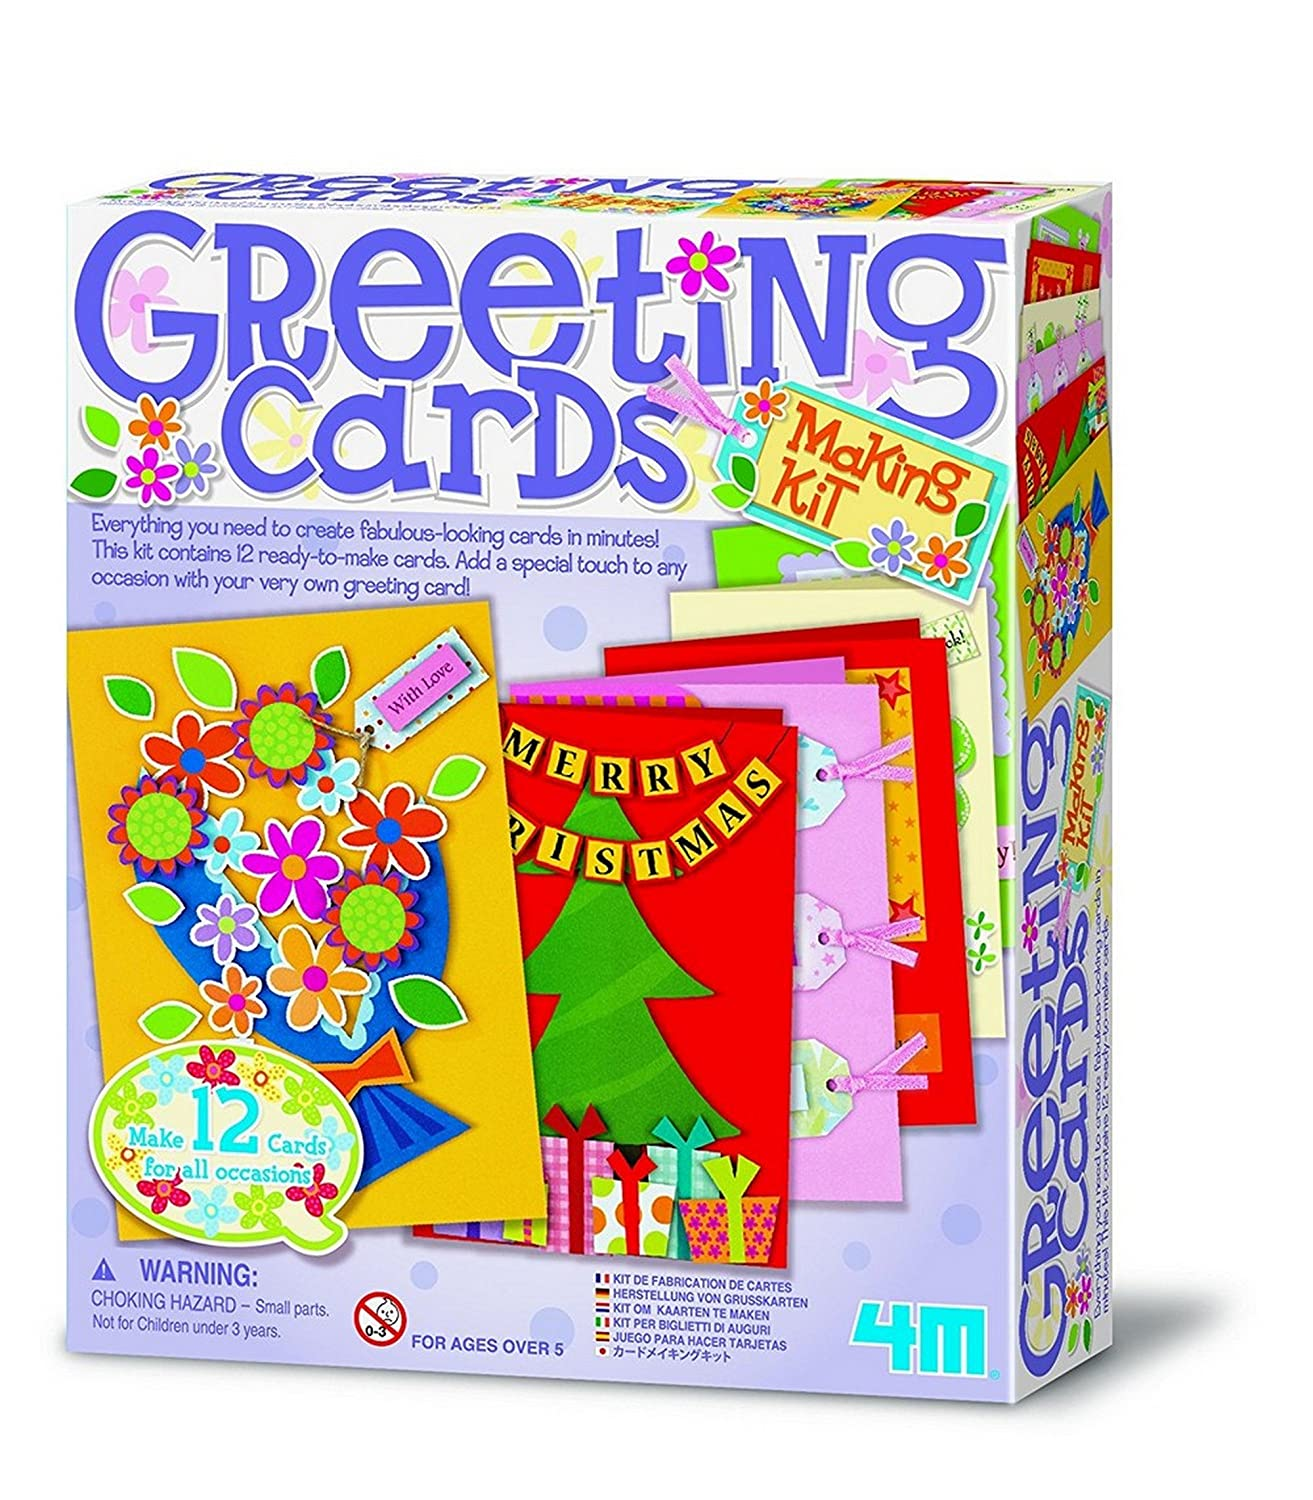 4m Make Your Own Greeting Cards Amazon Toys Games